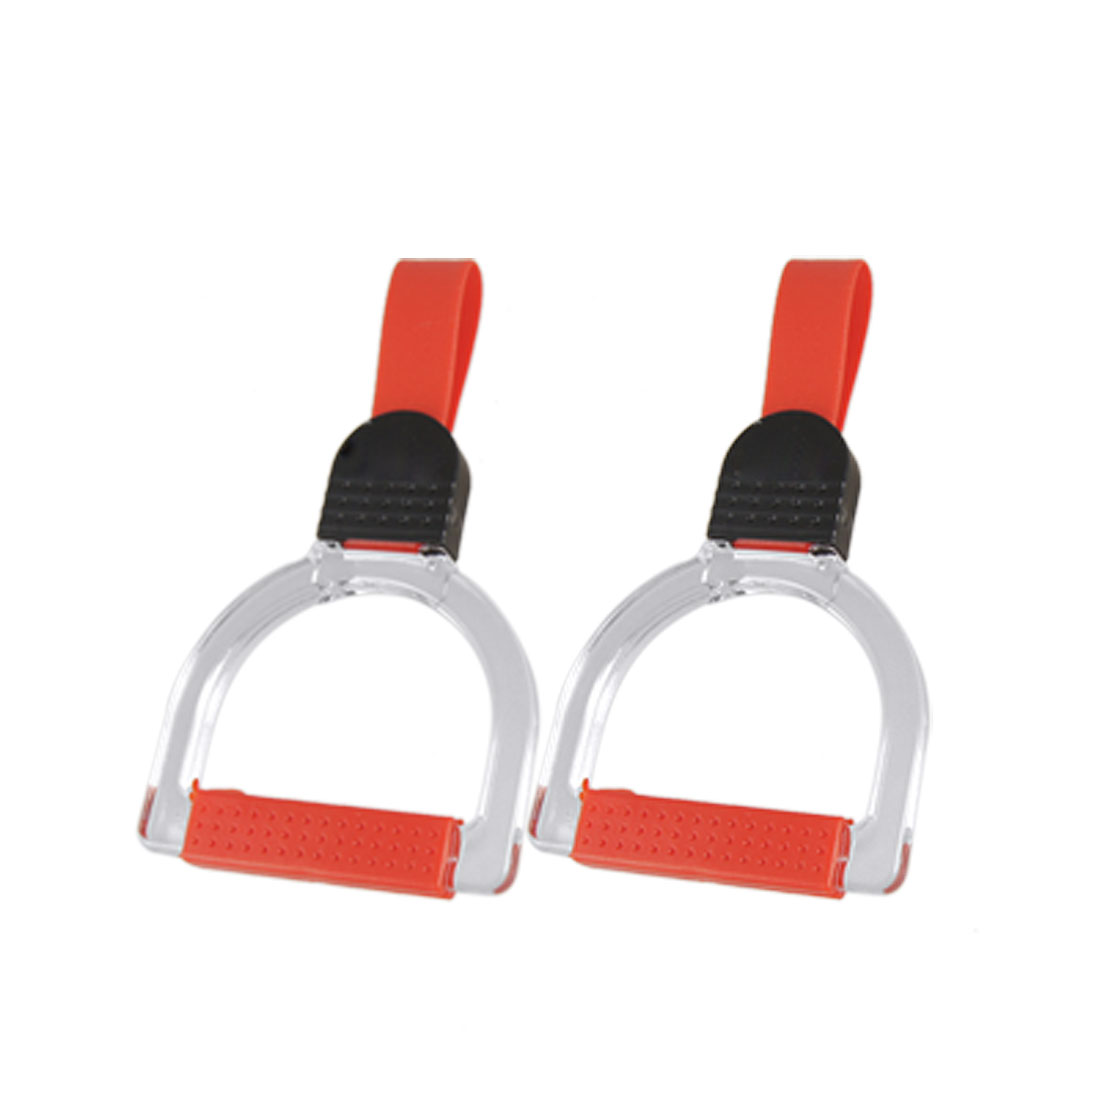 Trolley Bus Nonslip Hand Grips Handle Red Clear 2 Pcs